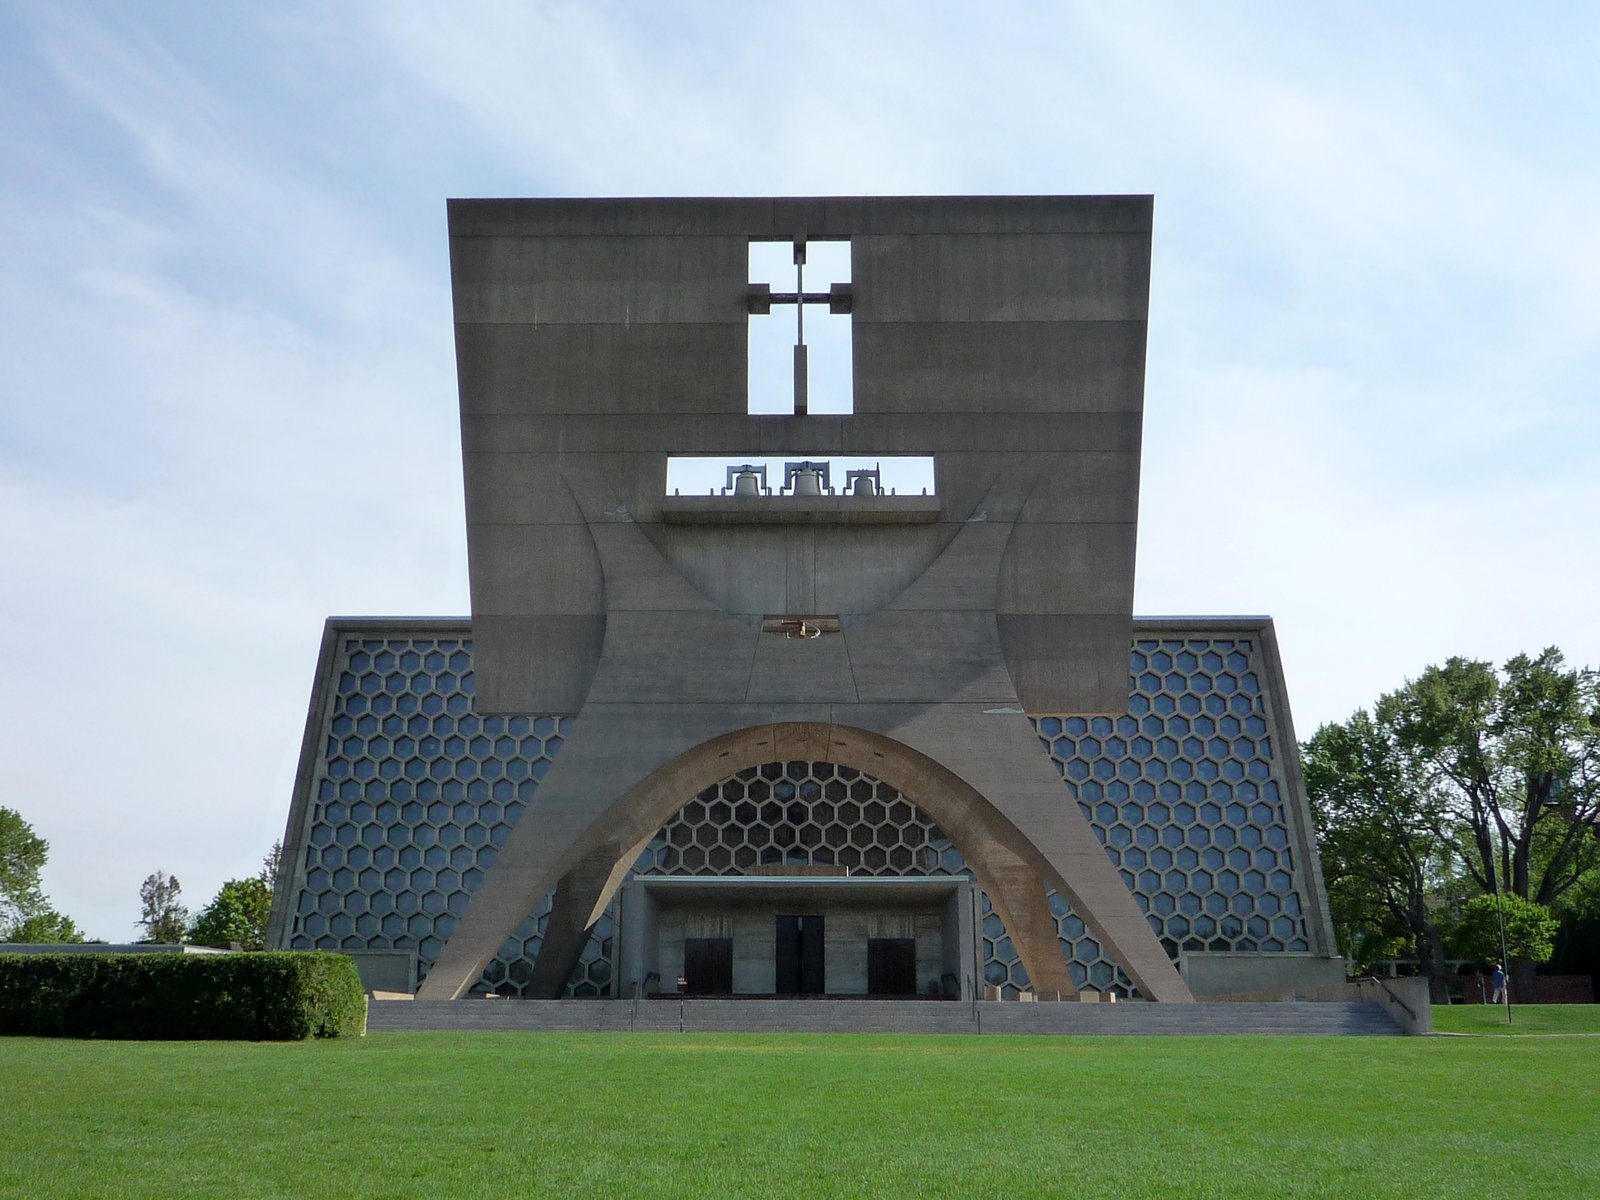 Church at St. John's Abbey (Collegeville, Minnesota, 1961)   In 1950, Abbot Baldwin Dworschak solicited forward-thinking designs from leading architects to remake his Minnesota church and create a monument to the service of God. Breuer answered the call. There's a certain majesty to the bell tower greeting the faithful, a massive panel supported by a curvaceous stand. That Breuer then follows it up with the church itself, with a massive wall of hexagonal stained glass and concrete tresses, makes this a classic.  Photo Credit: Wikimedia Commons  Photo 7 of 12 in Design Icon: 10 Buildings by Marcel Breuer